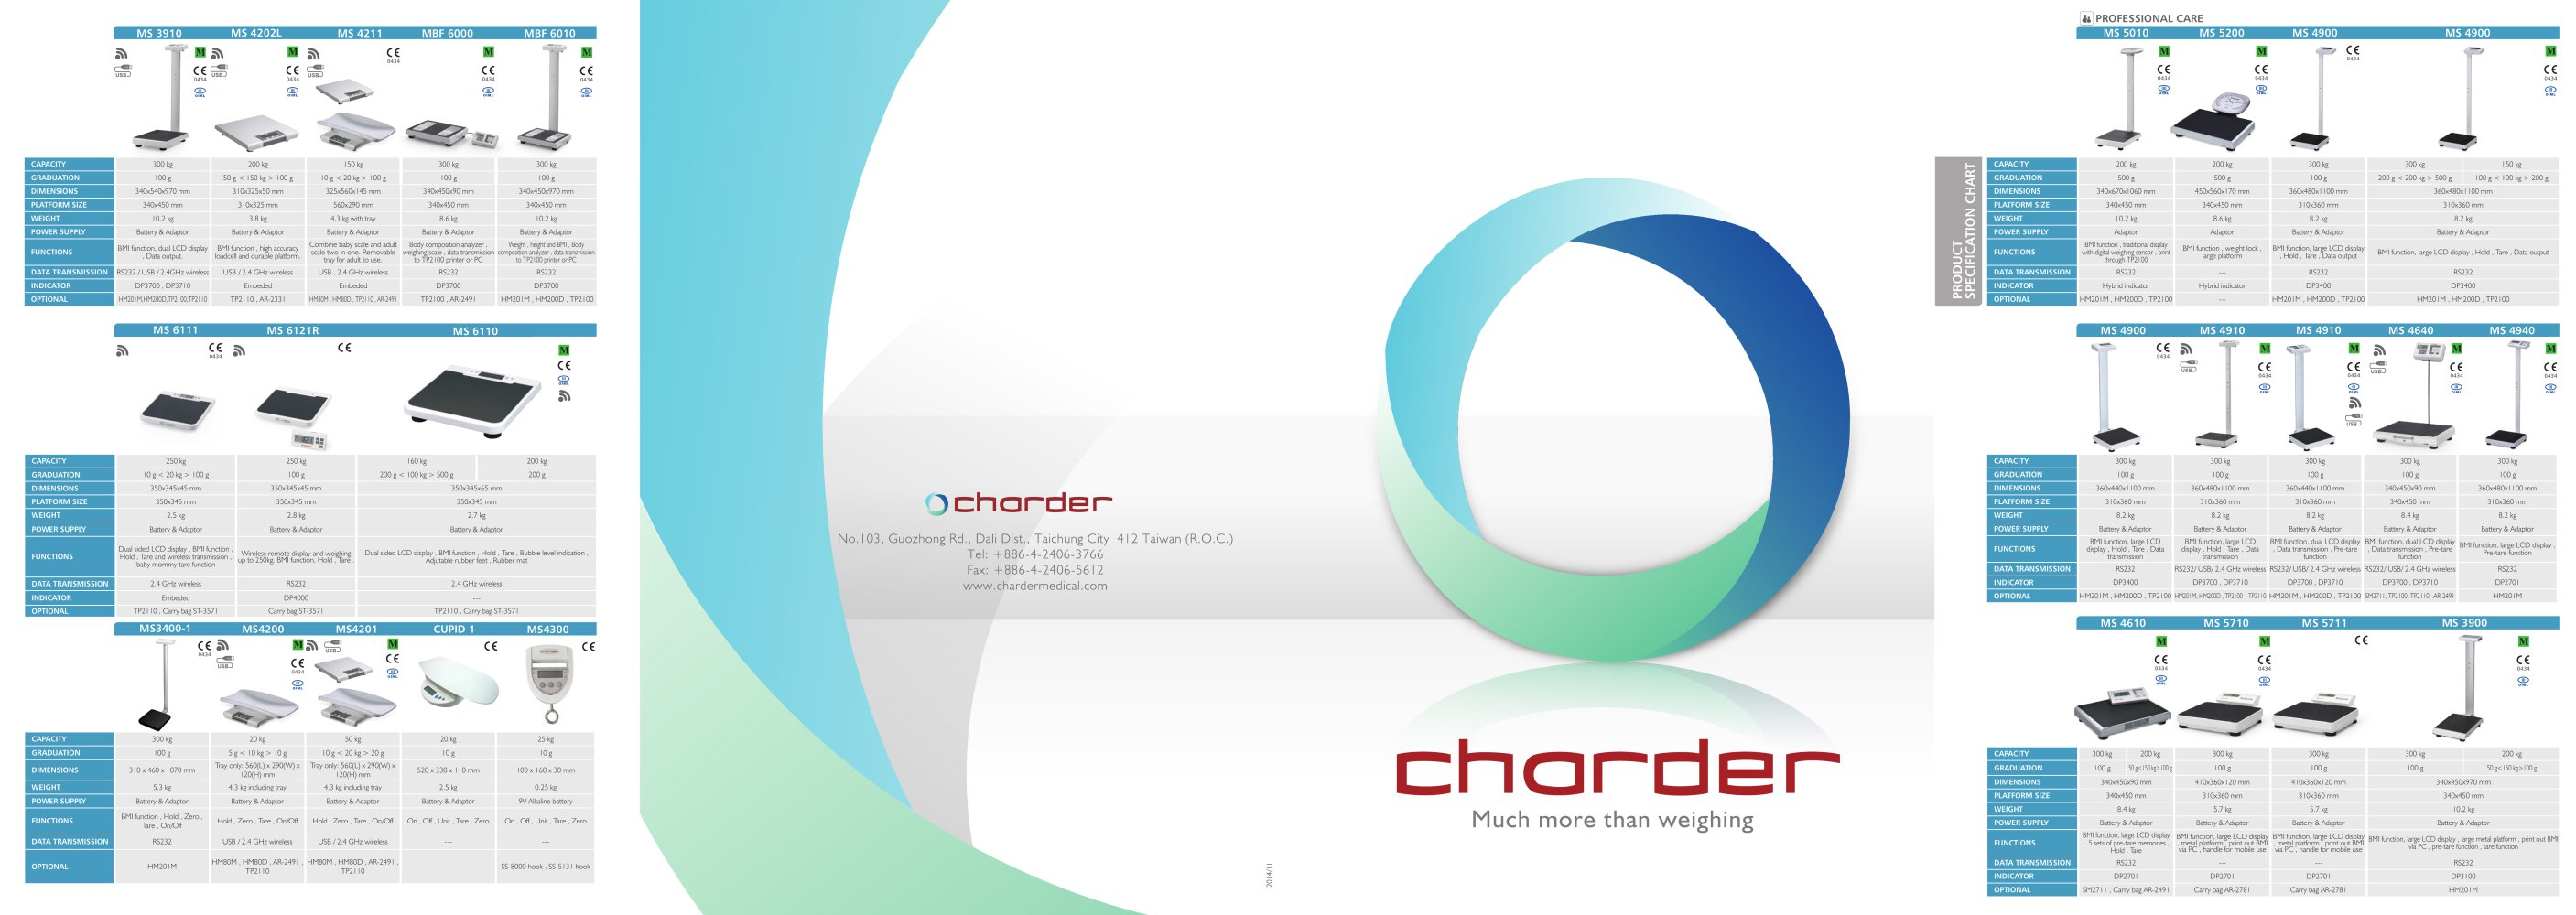 Product specification - 2015 Charder Product Specification 1 2 Pages